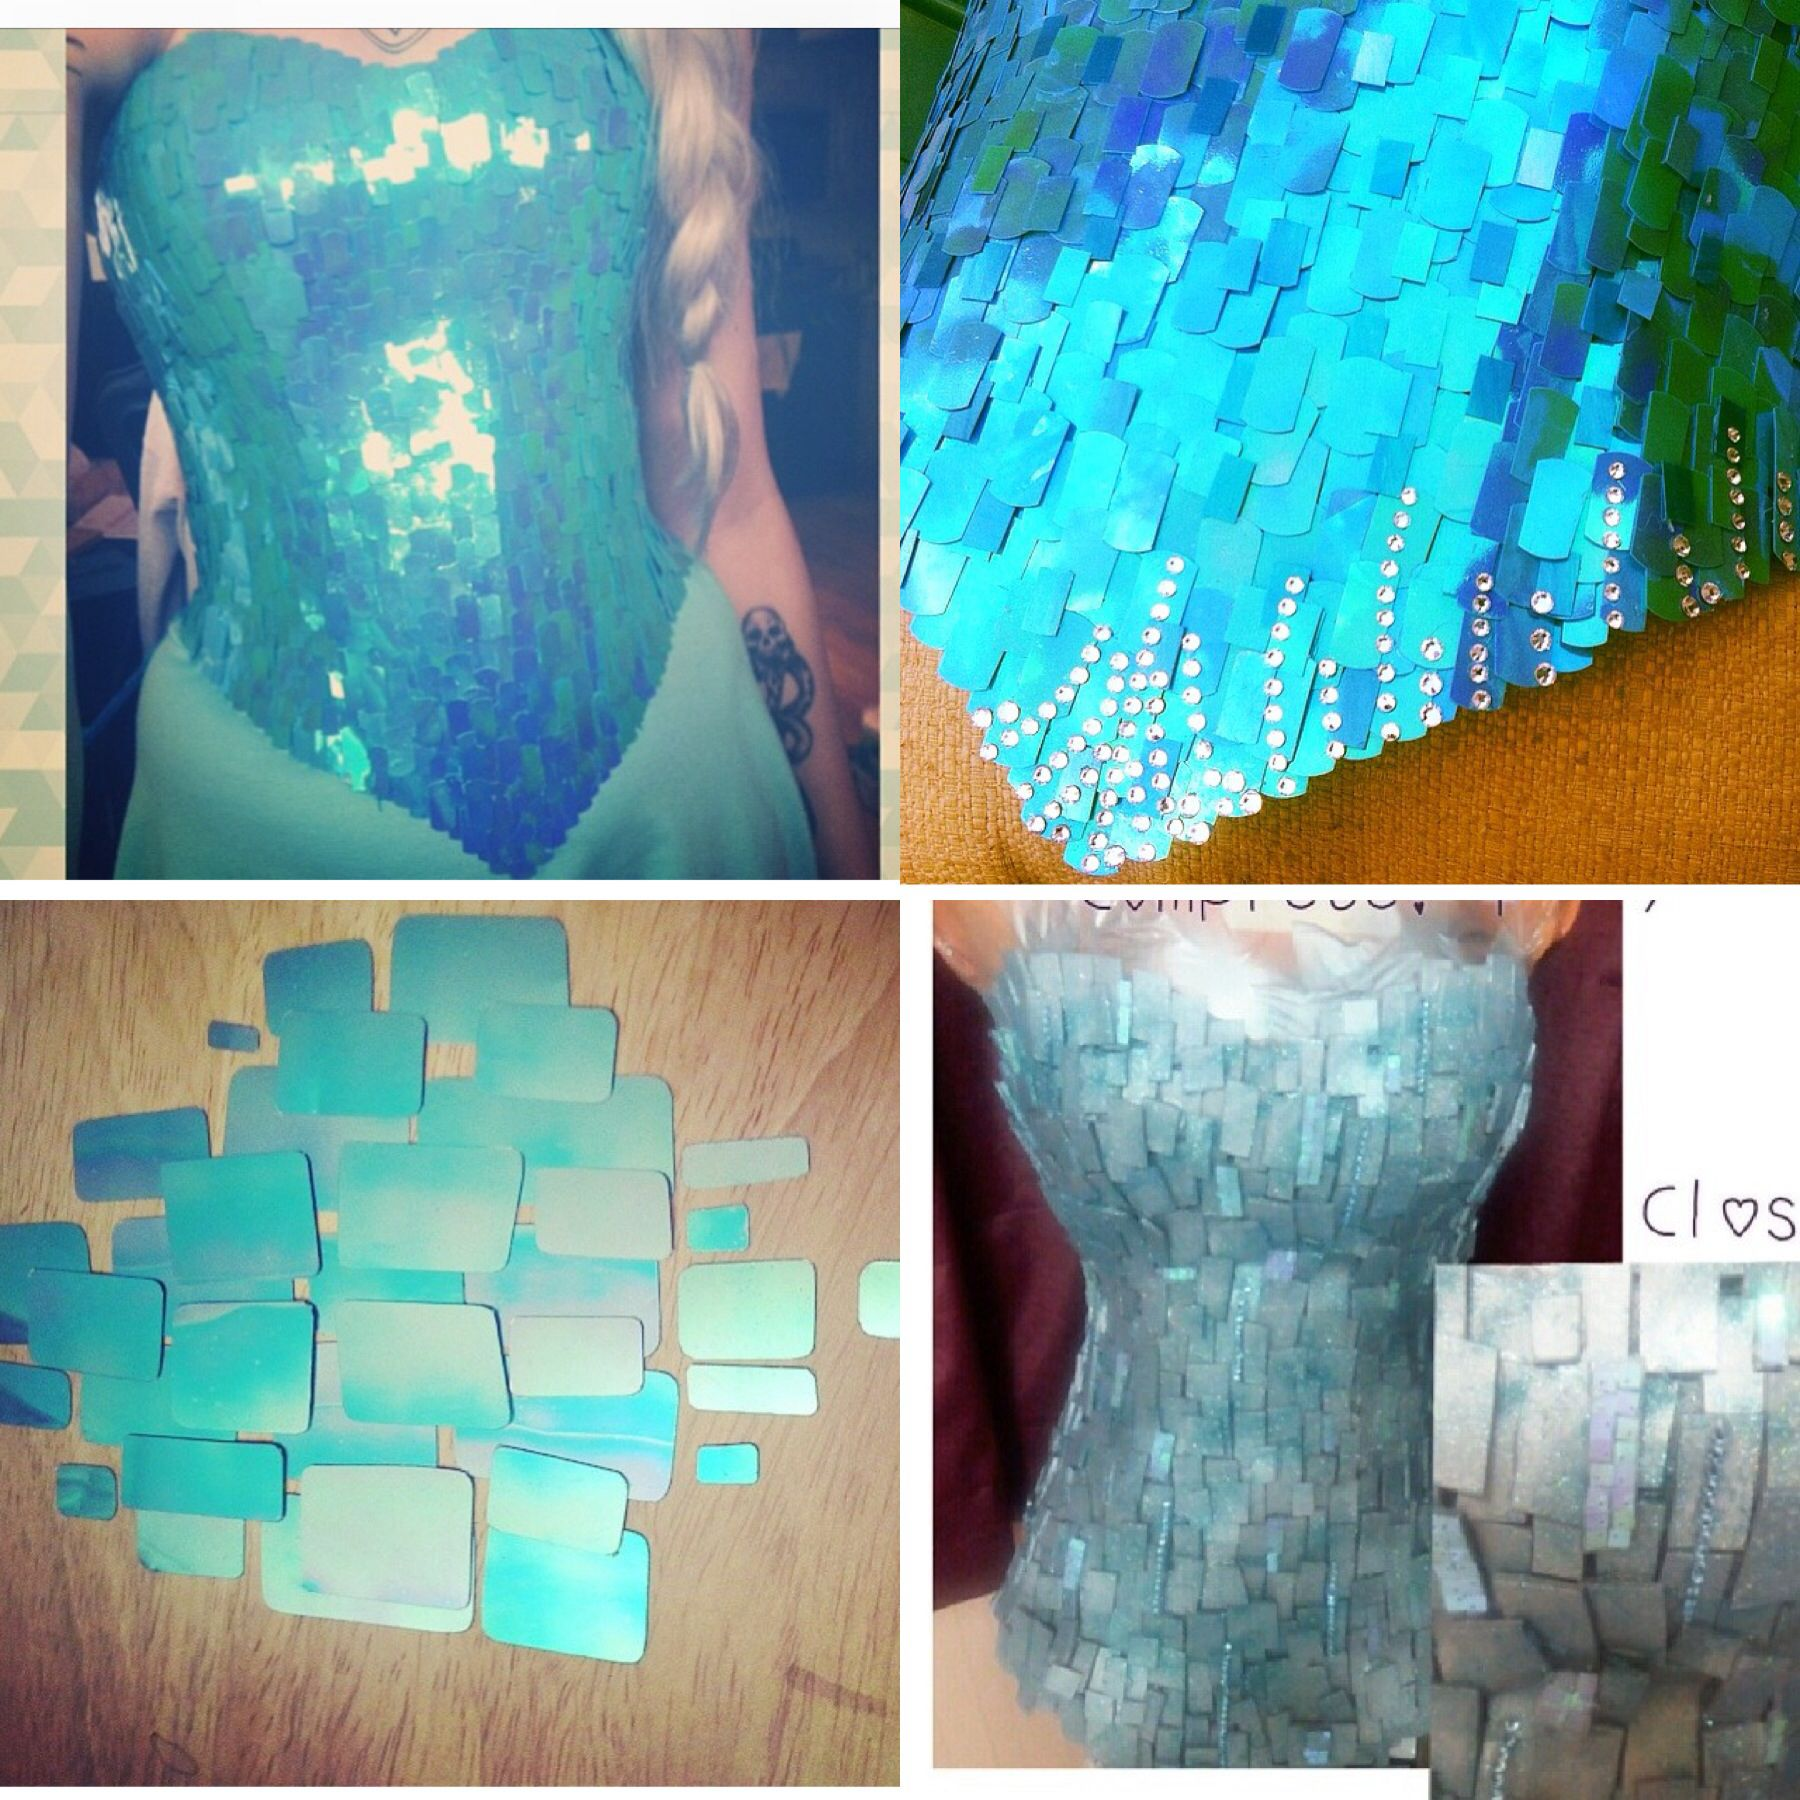 6fcd6a5282 Elsa references. Must buy the right sequins and large aqua sequins for  corset. So freaking pumpedddd if the skirt i bought fits.